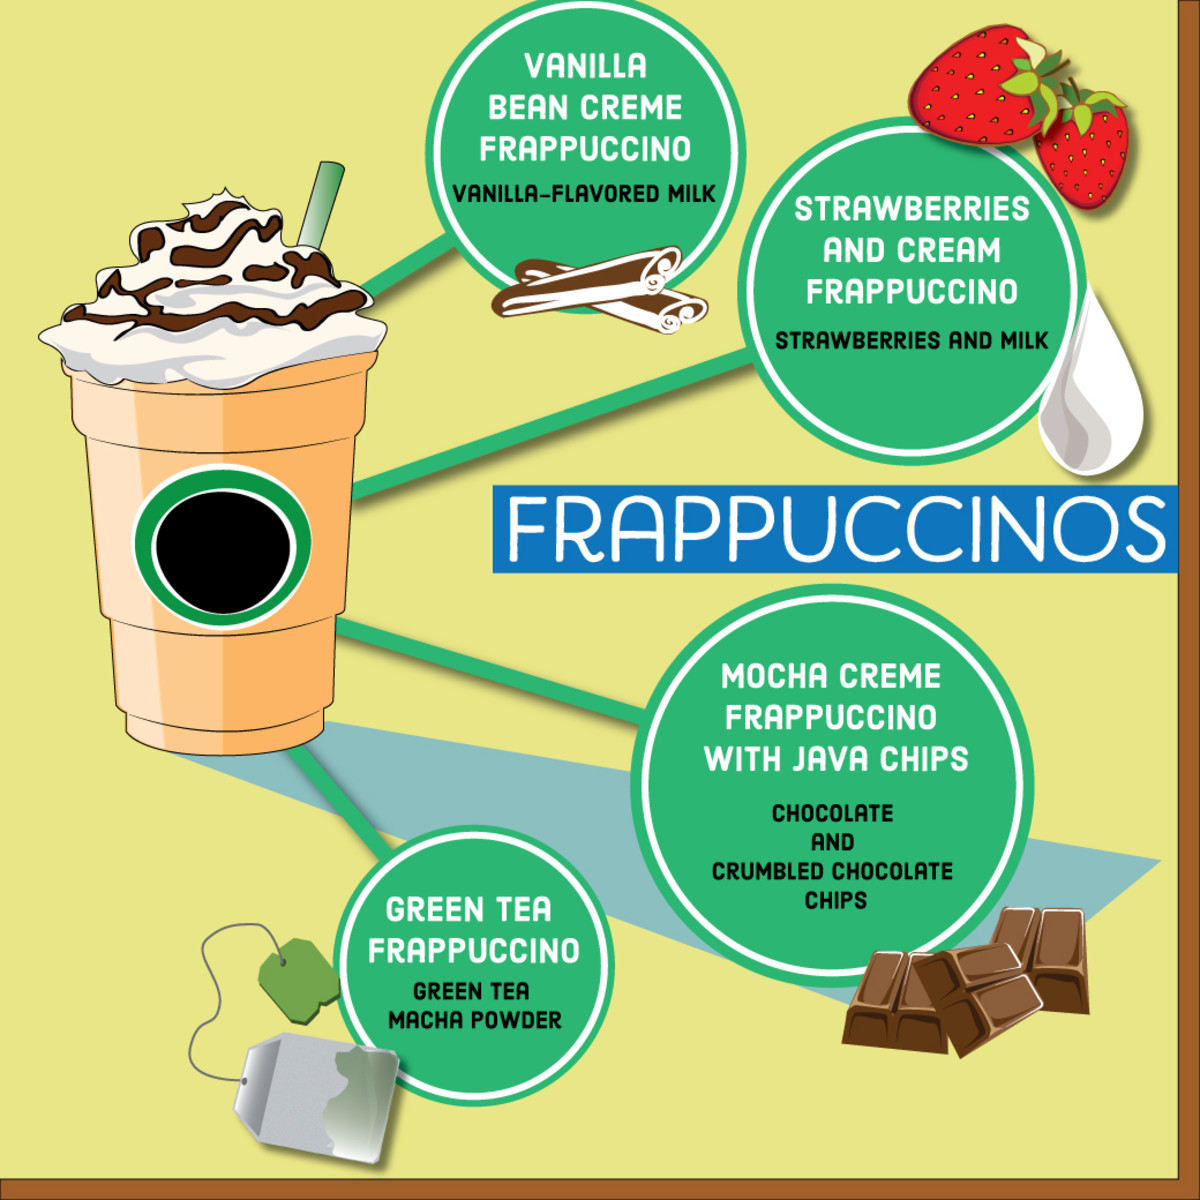 Frappuccinos are one of Starbuck's most famous drinks. Did you know you can get them without coffee?